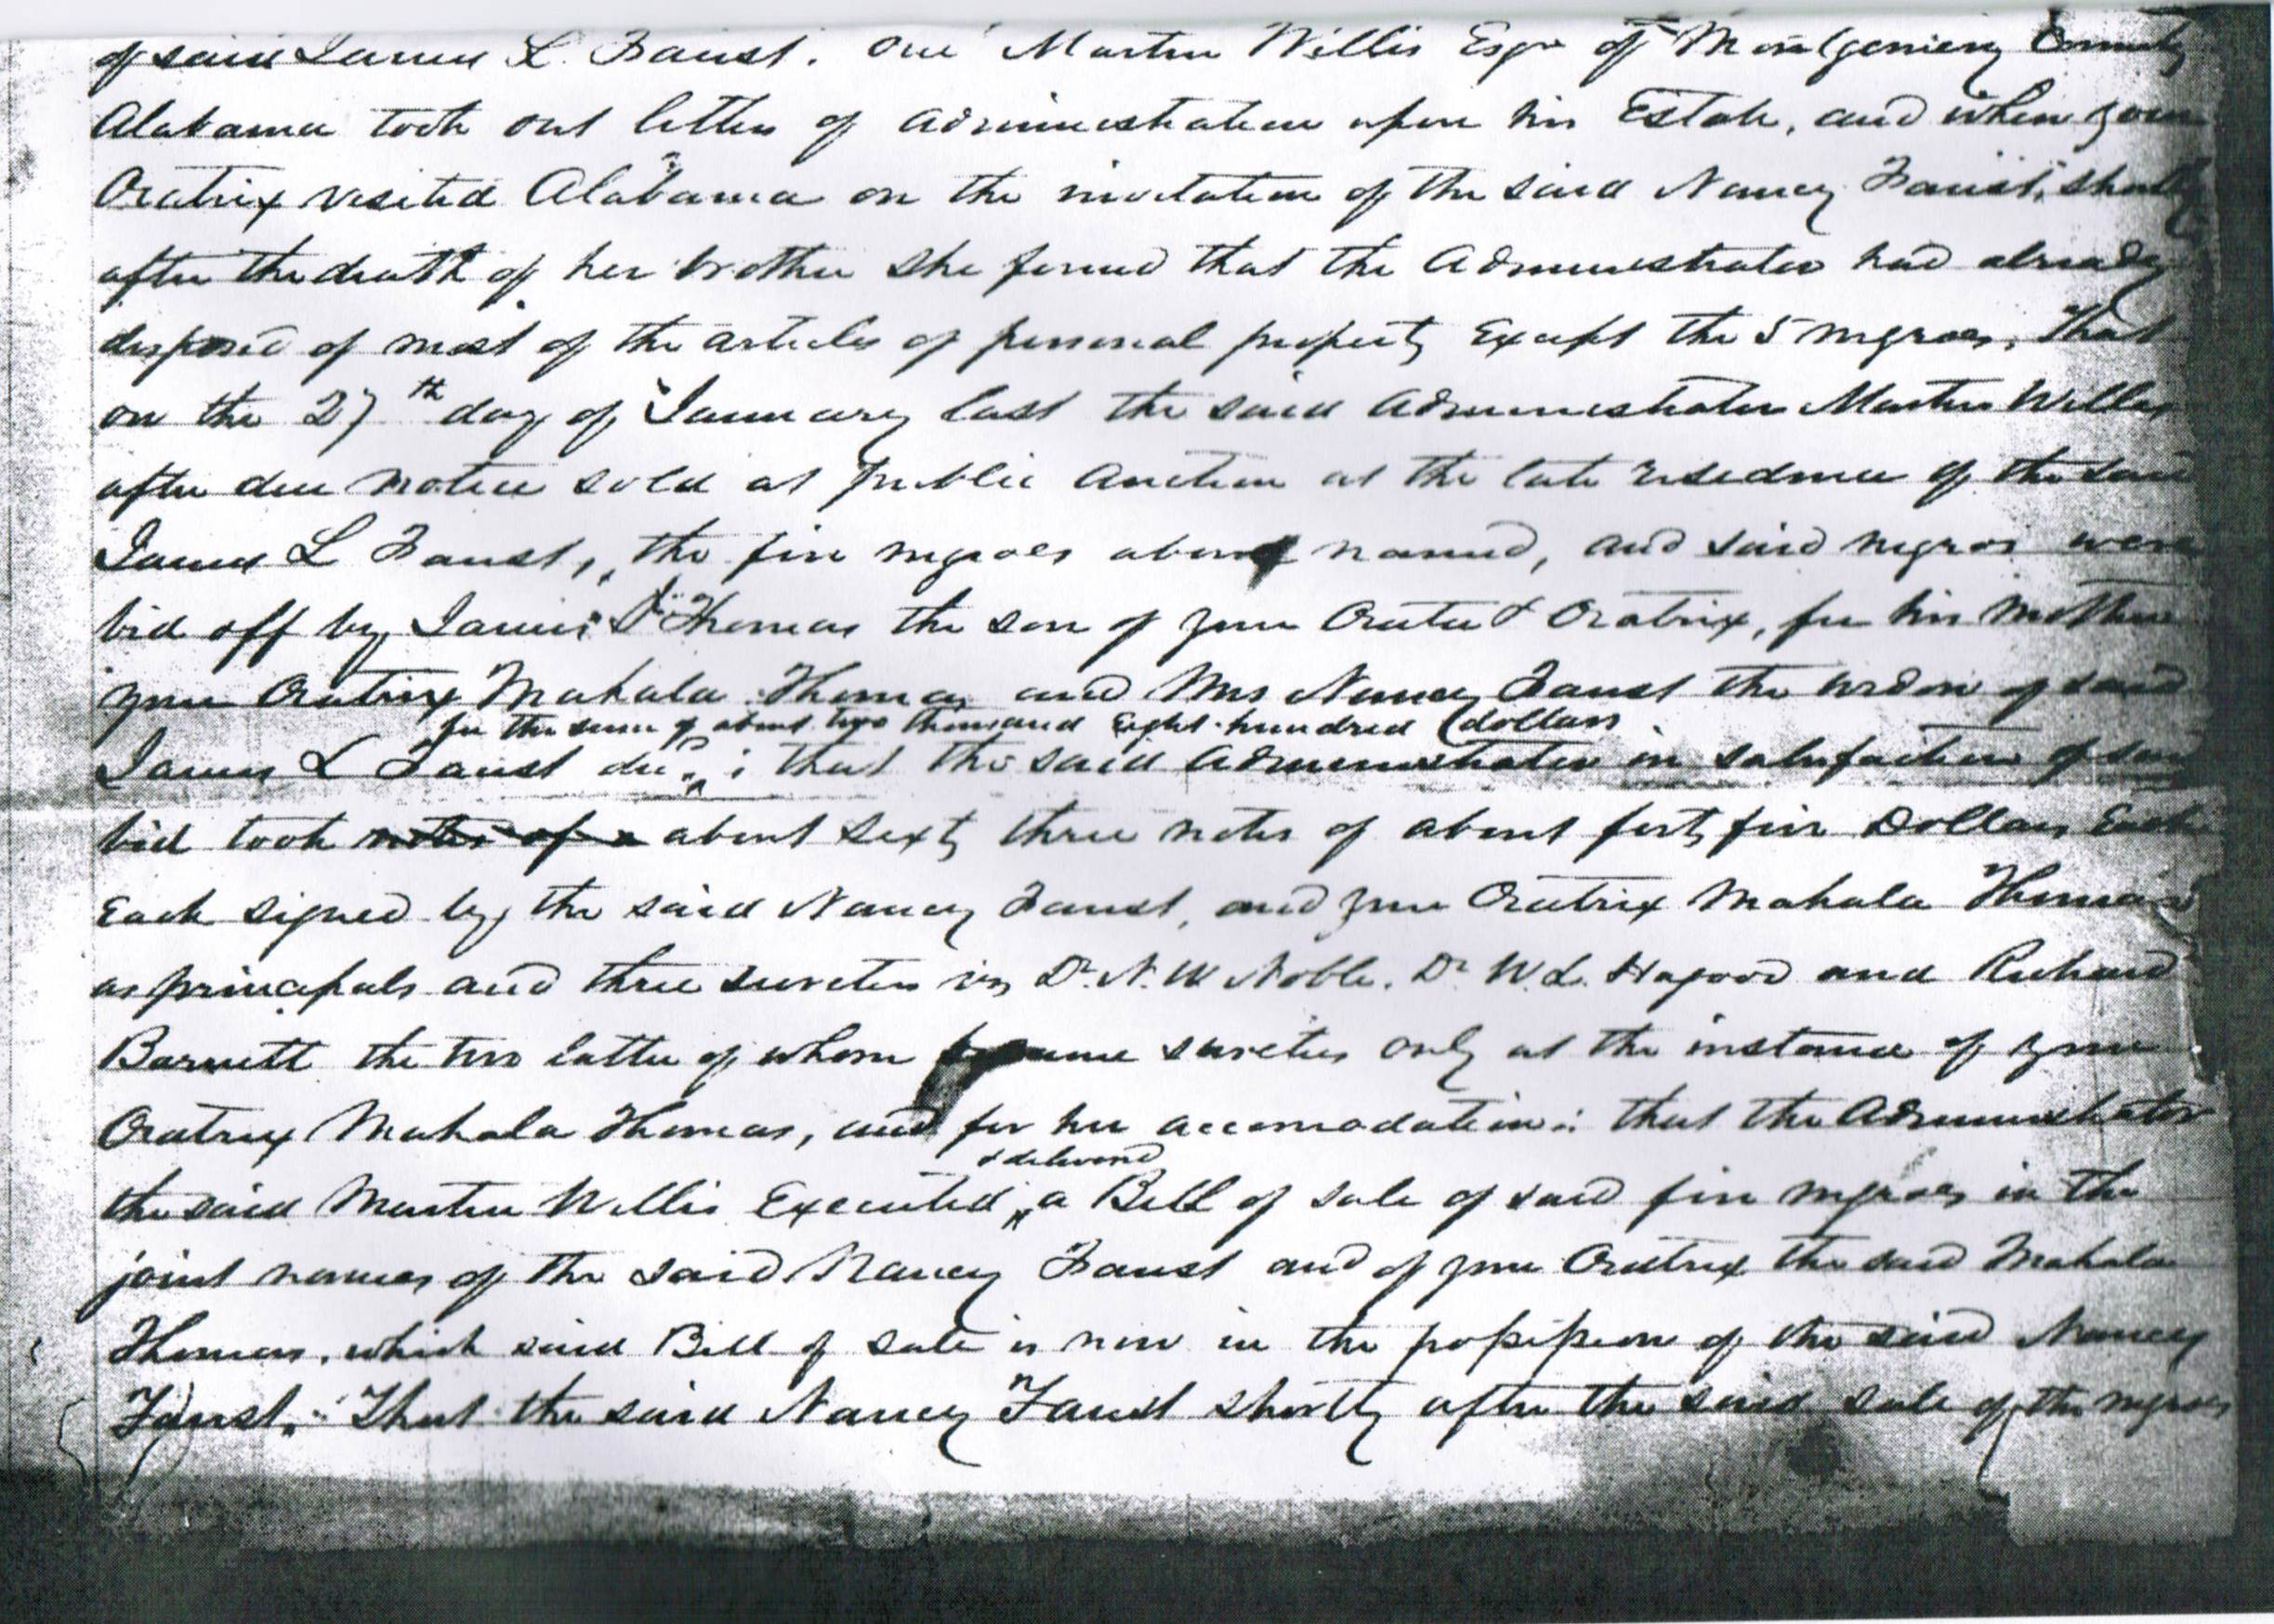 B&W scan of a small, handwritten document